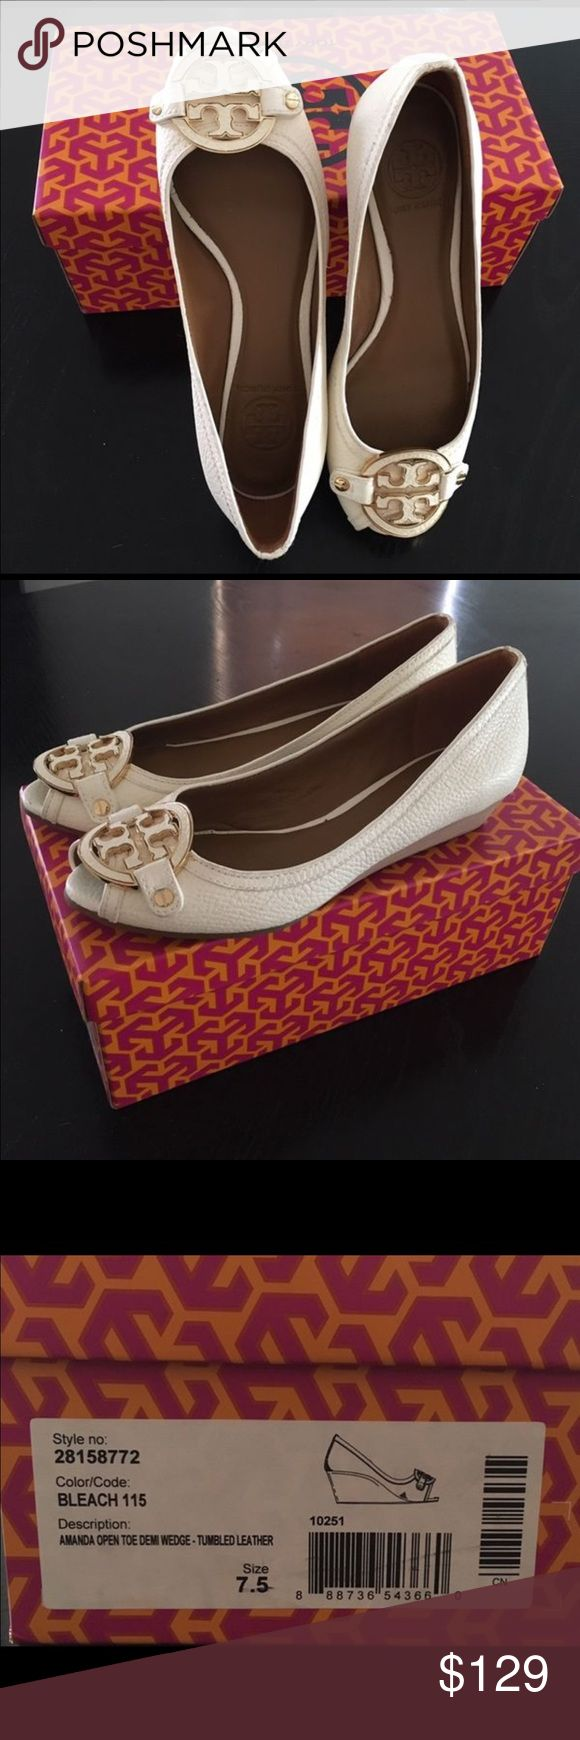 Amanda open toe mid wedge Tory Burch REDUCED **Tory burch open toe mid wedge all leather bleach color. Wedge height is 3 cm. Tory Burch Shoes Wedges